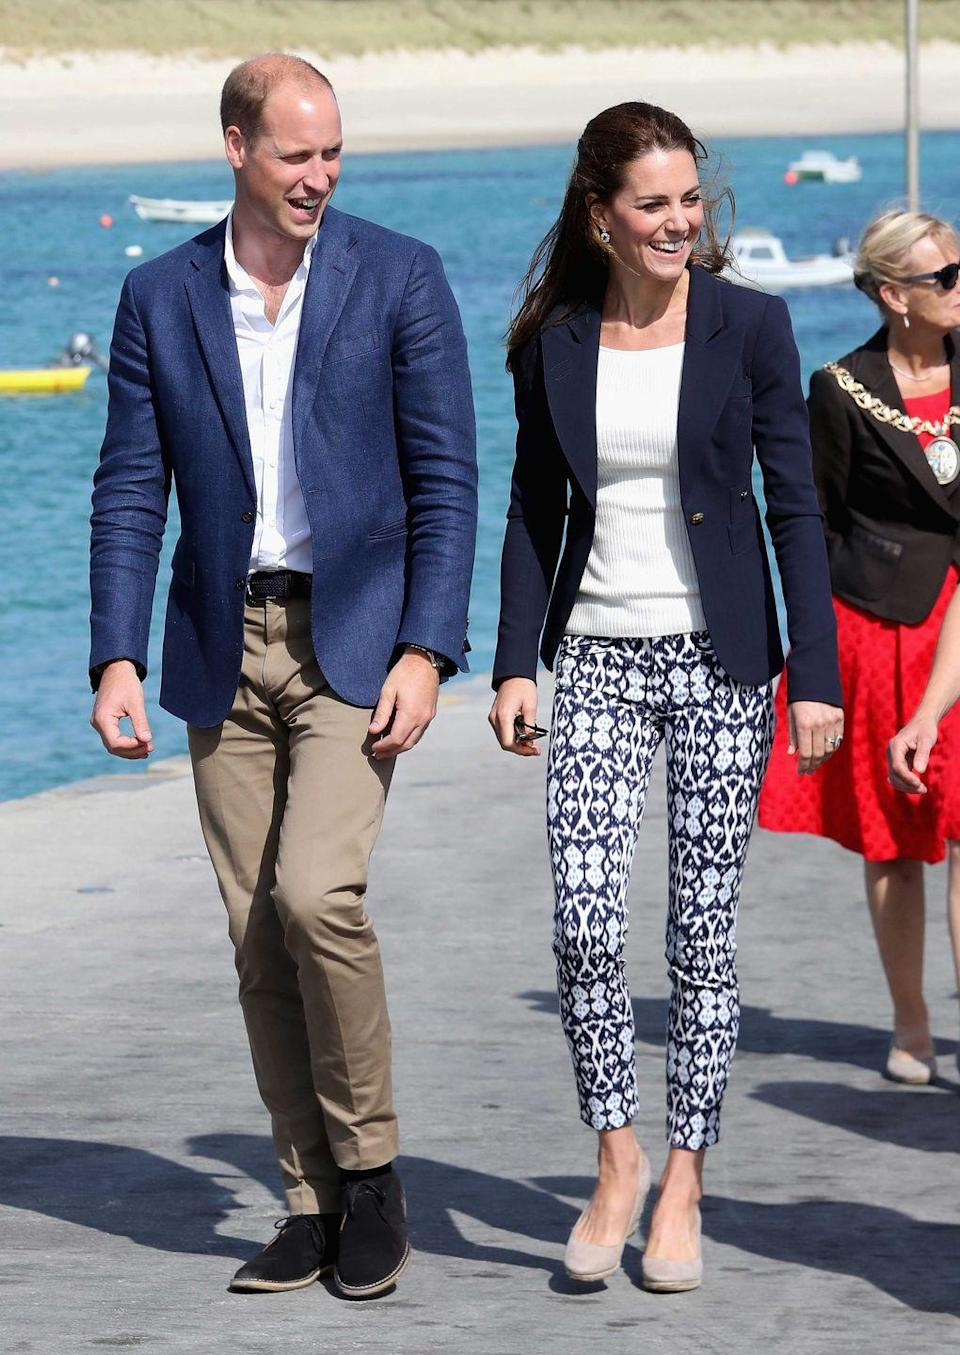 """<p>Kate's pants are from the <a href=""""http://www.gap.com/browse/product.do?pid=130046282&vid=1&locale=en_US&kwid=1&sem=false&sdkw=bi-stretch-skinny-ankle-pants-P130046&sdReferer=https%3A%2F%2Fwww.google.com%2F"""" rel=""""nofollow noopener"""" target=""""_blank"""" data-ylk=""""slk:Gap"""" class=""""link rapid-noclick-resp"""">Gap</a>. Yes, you read that right. (Prince William and the Duchess were visiting the Island of St Martin's in England's Scilly Isles.)</p>"""